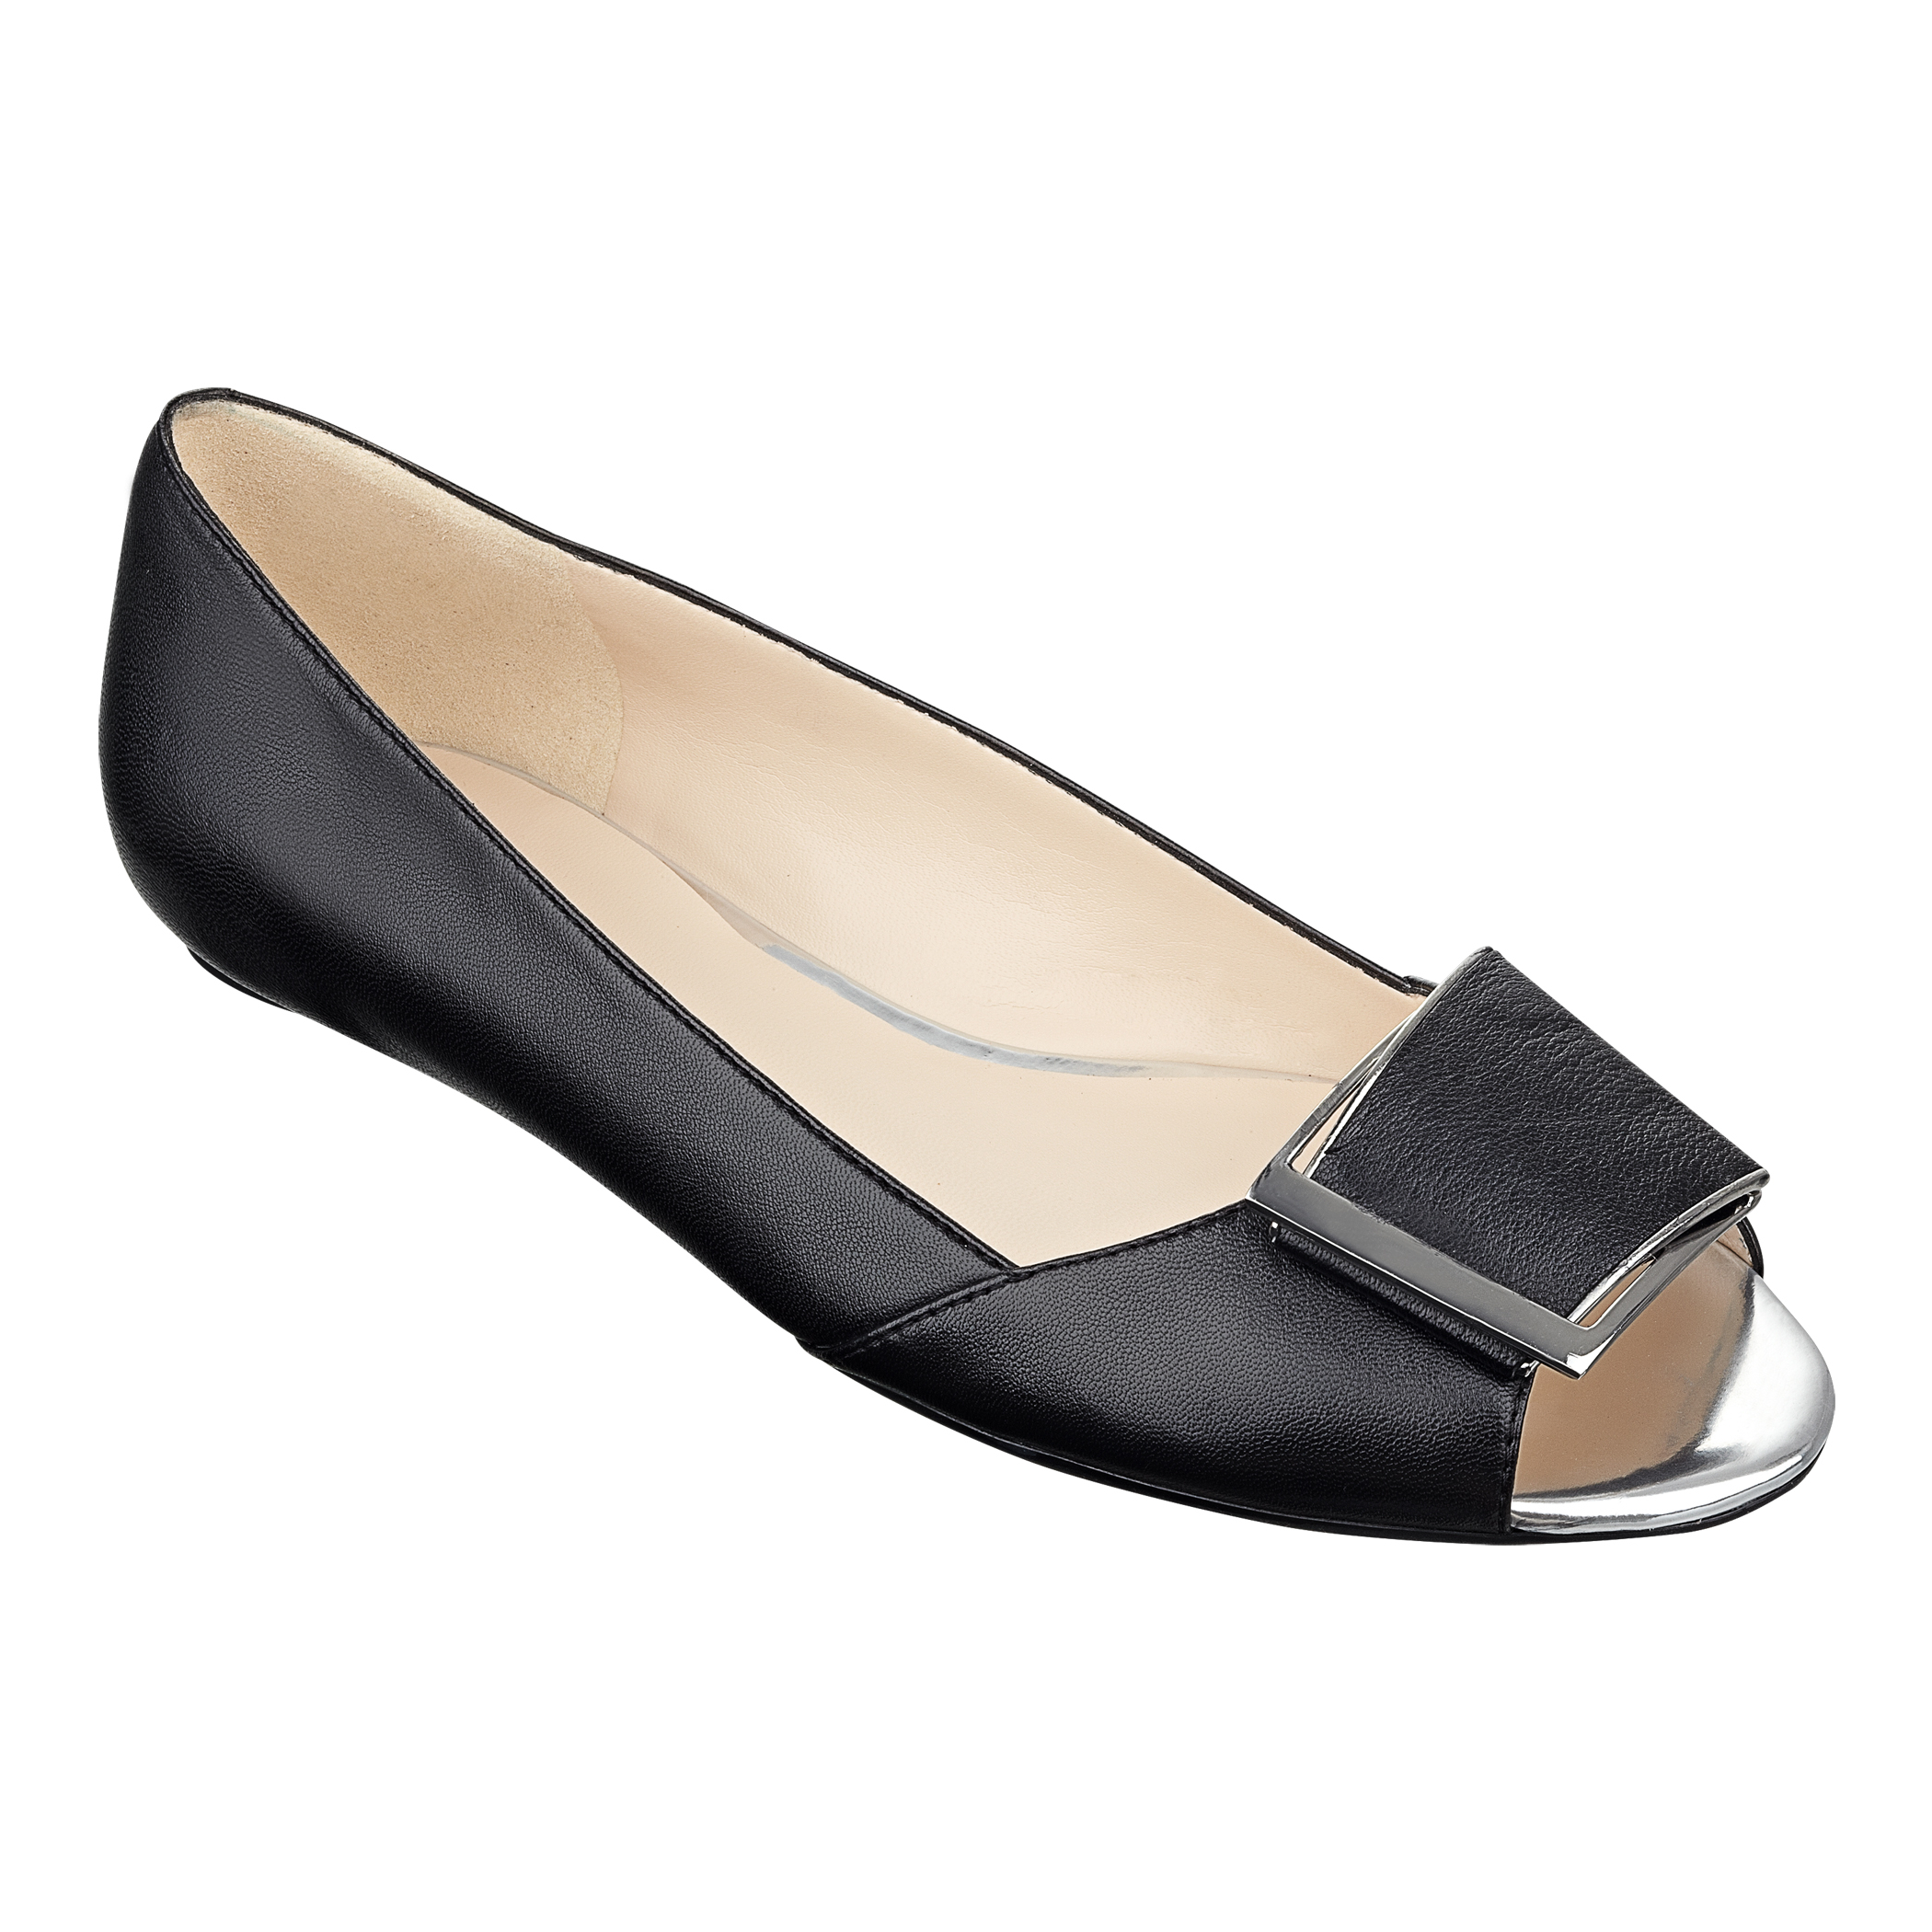 Chanel Peep-Toe Patent Leather Flats - Shoes - CHA167991 ... |Black Peep Toe Flat Shoes